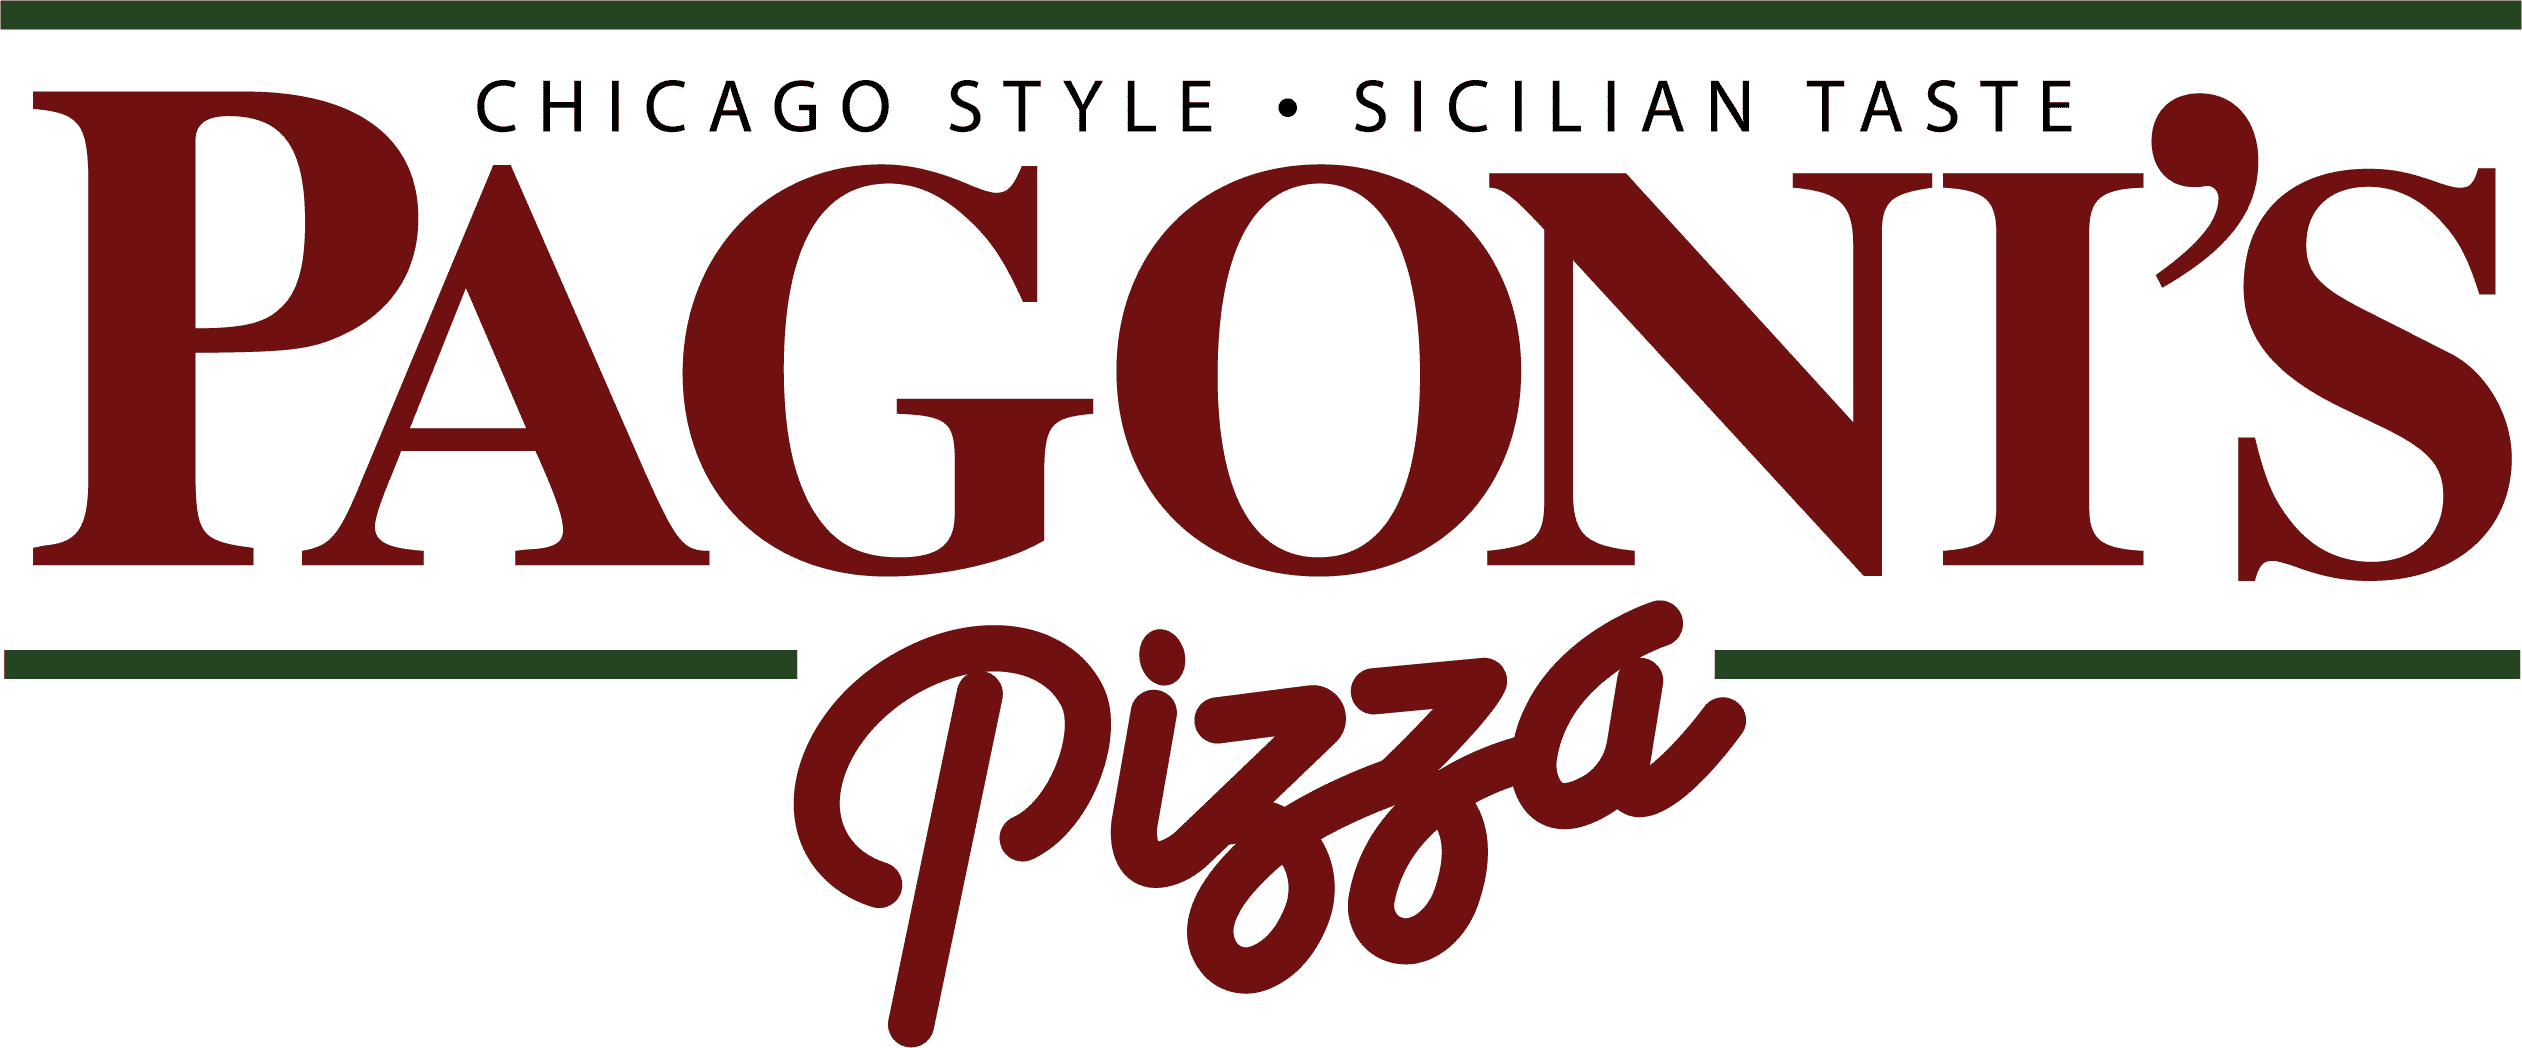 Chicago Style Sicilian Taste Pagonis Pizza